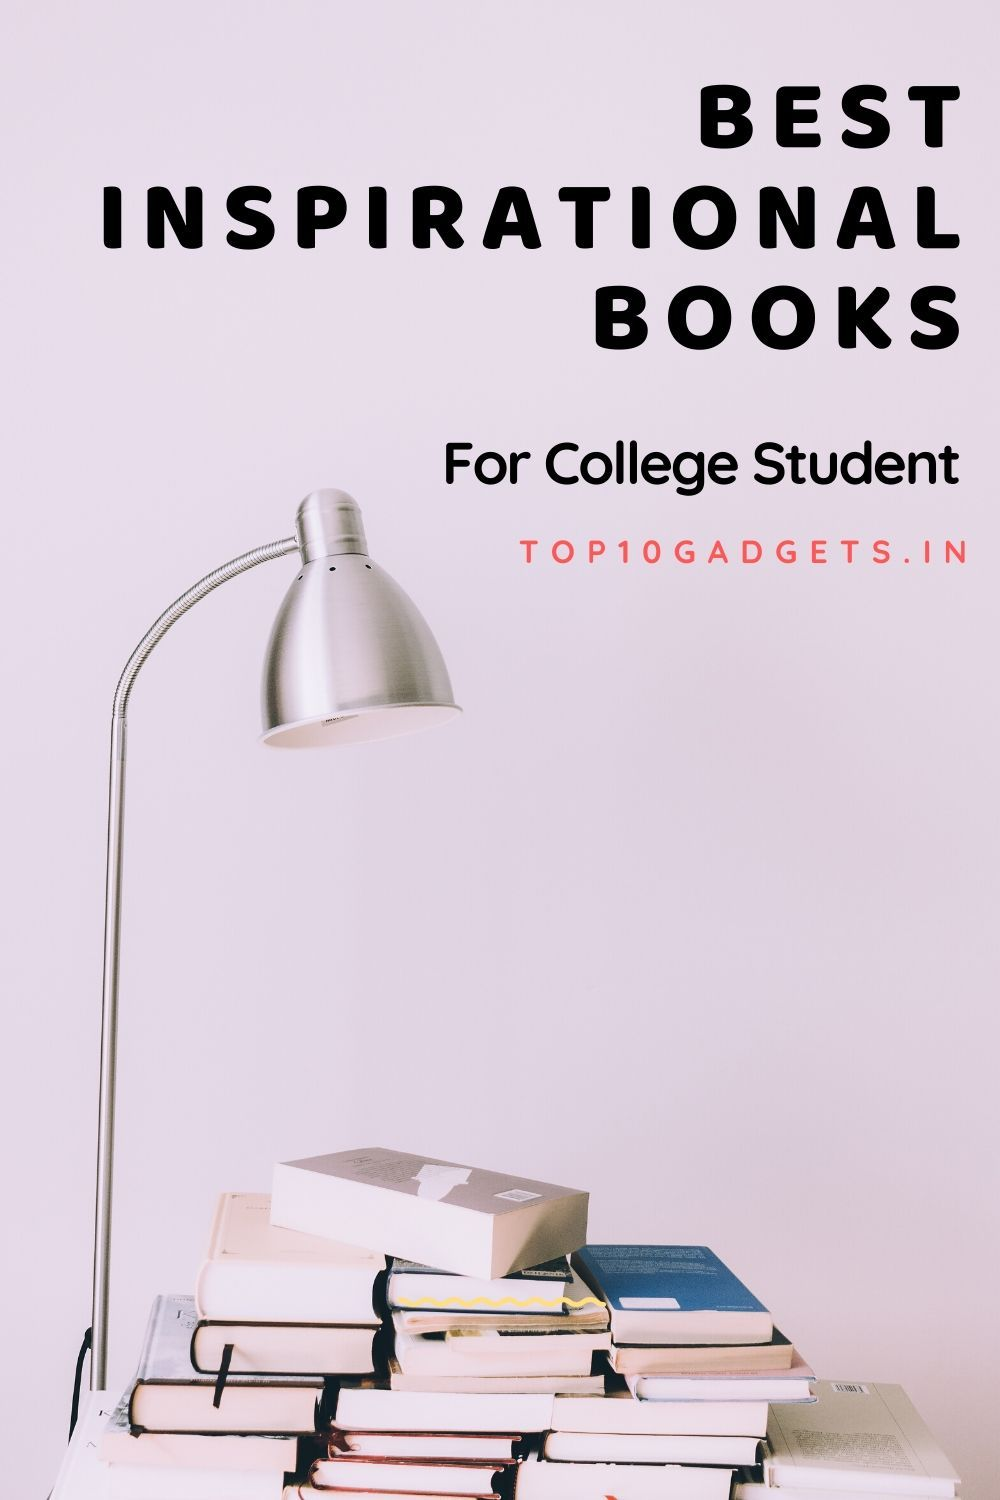 Best Inspirational Books For College Students In 2020 Best Inspirational Books Books For College Students Inspirational Books